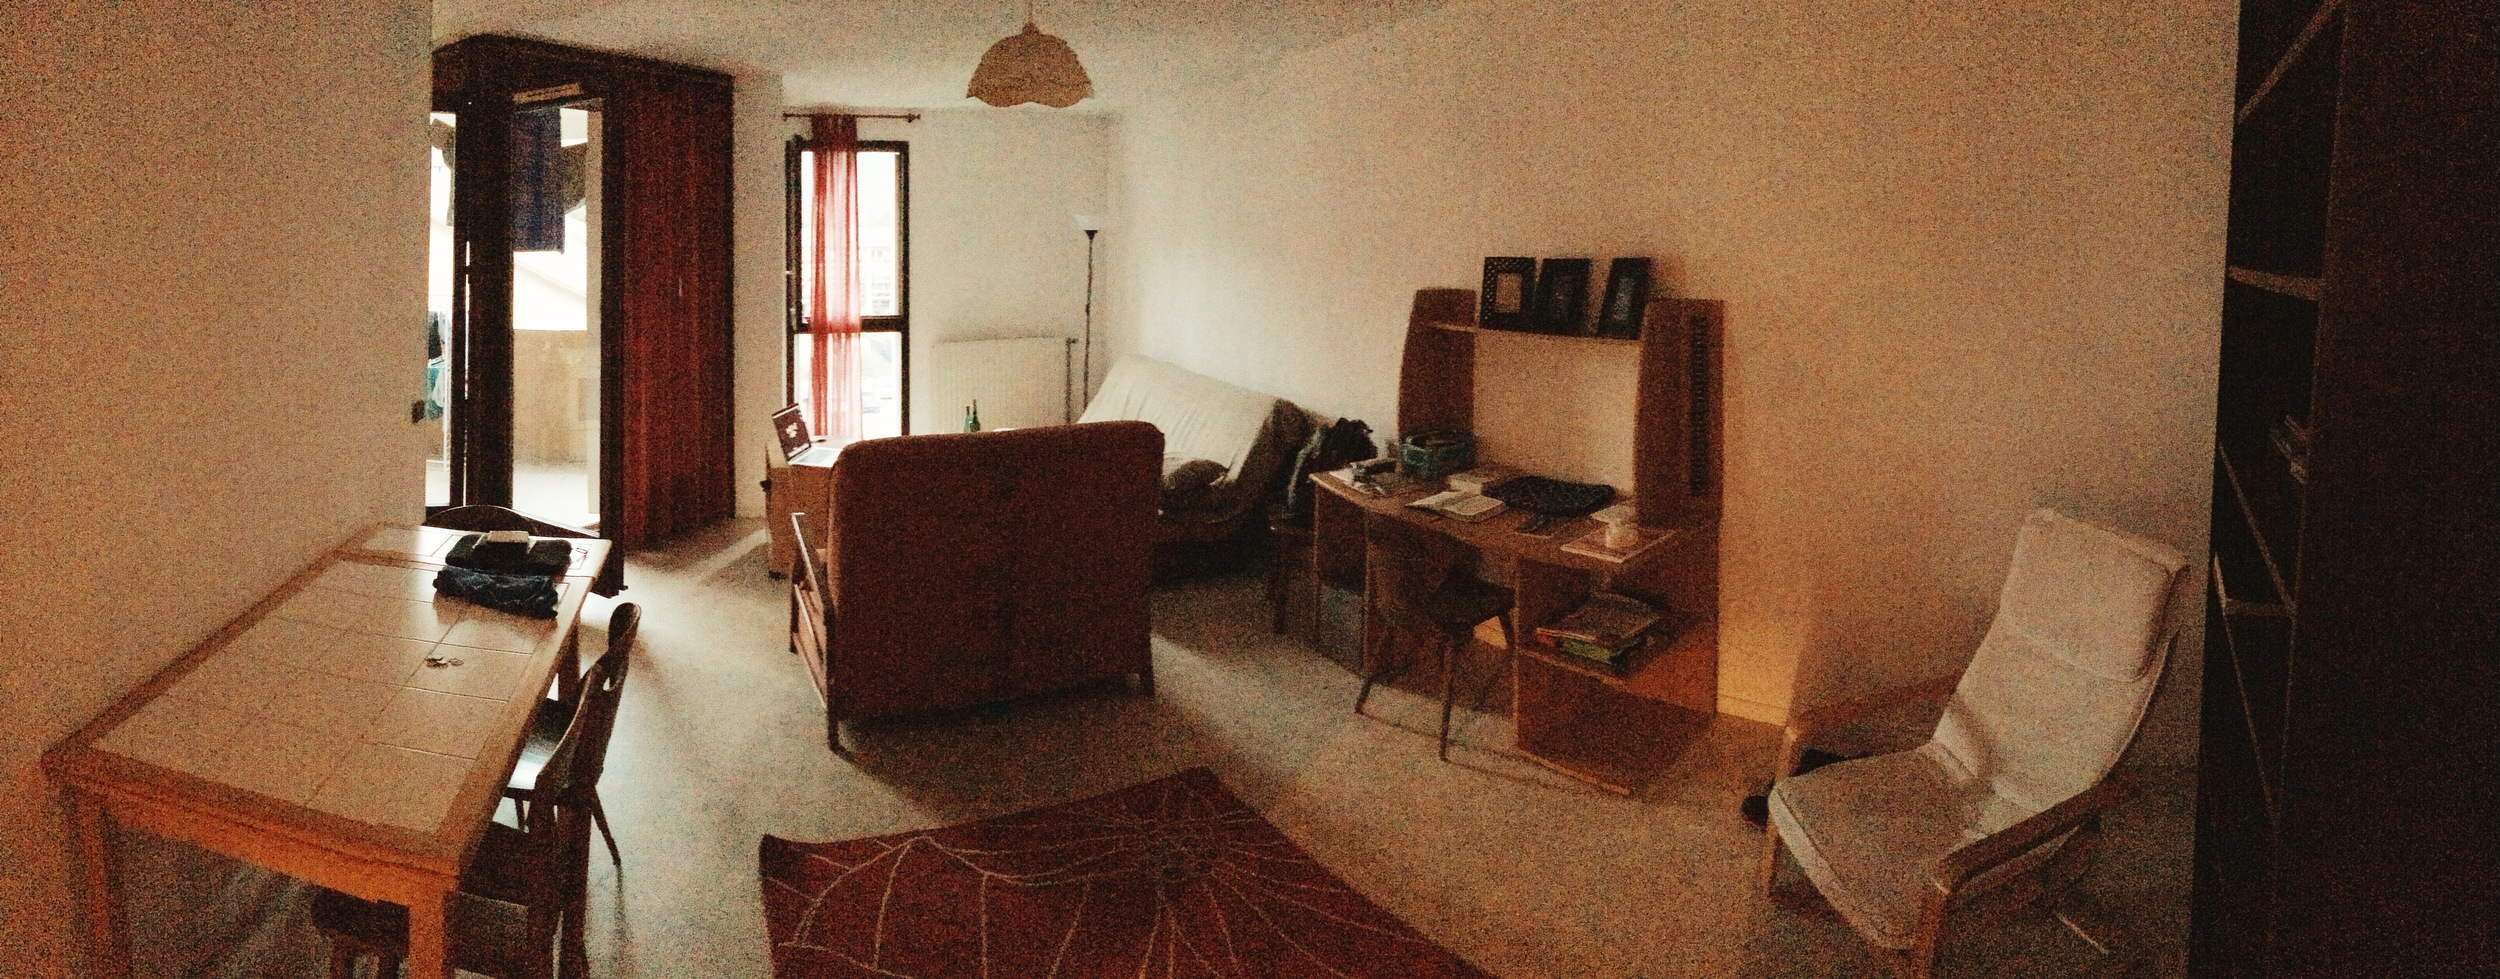 Our dining room, study, and living room.